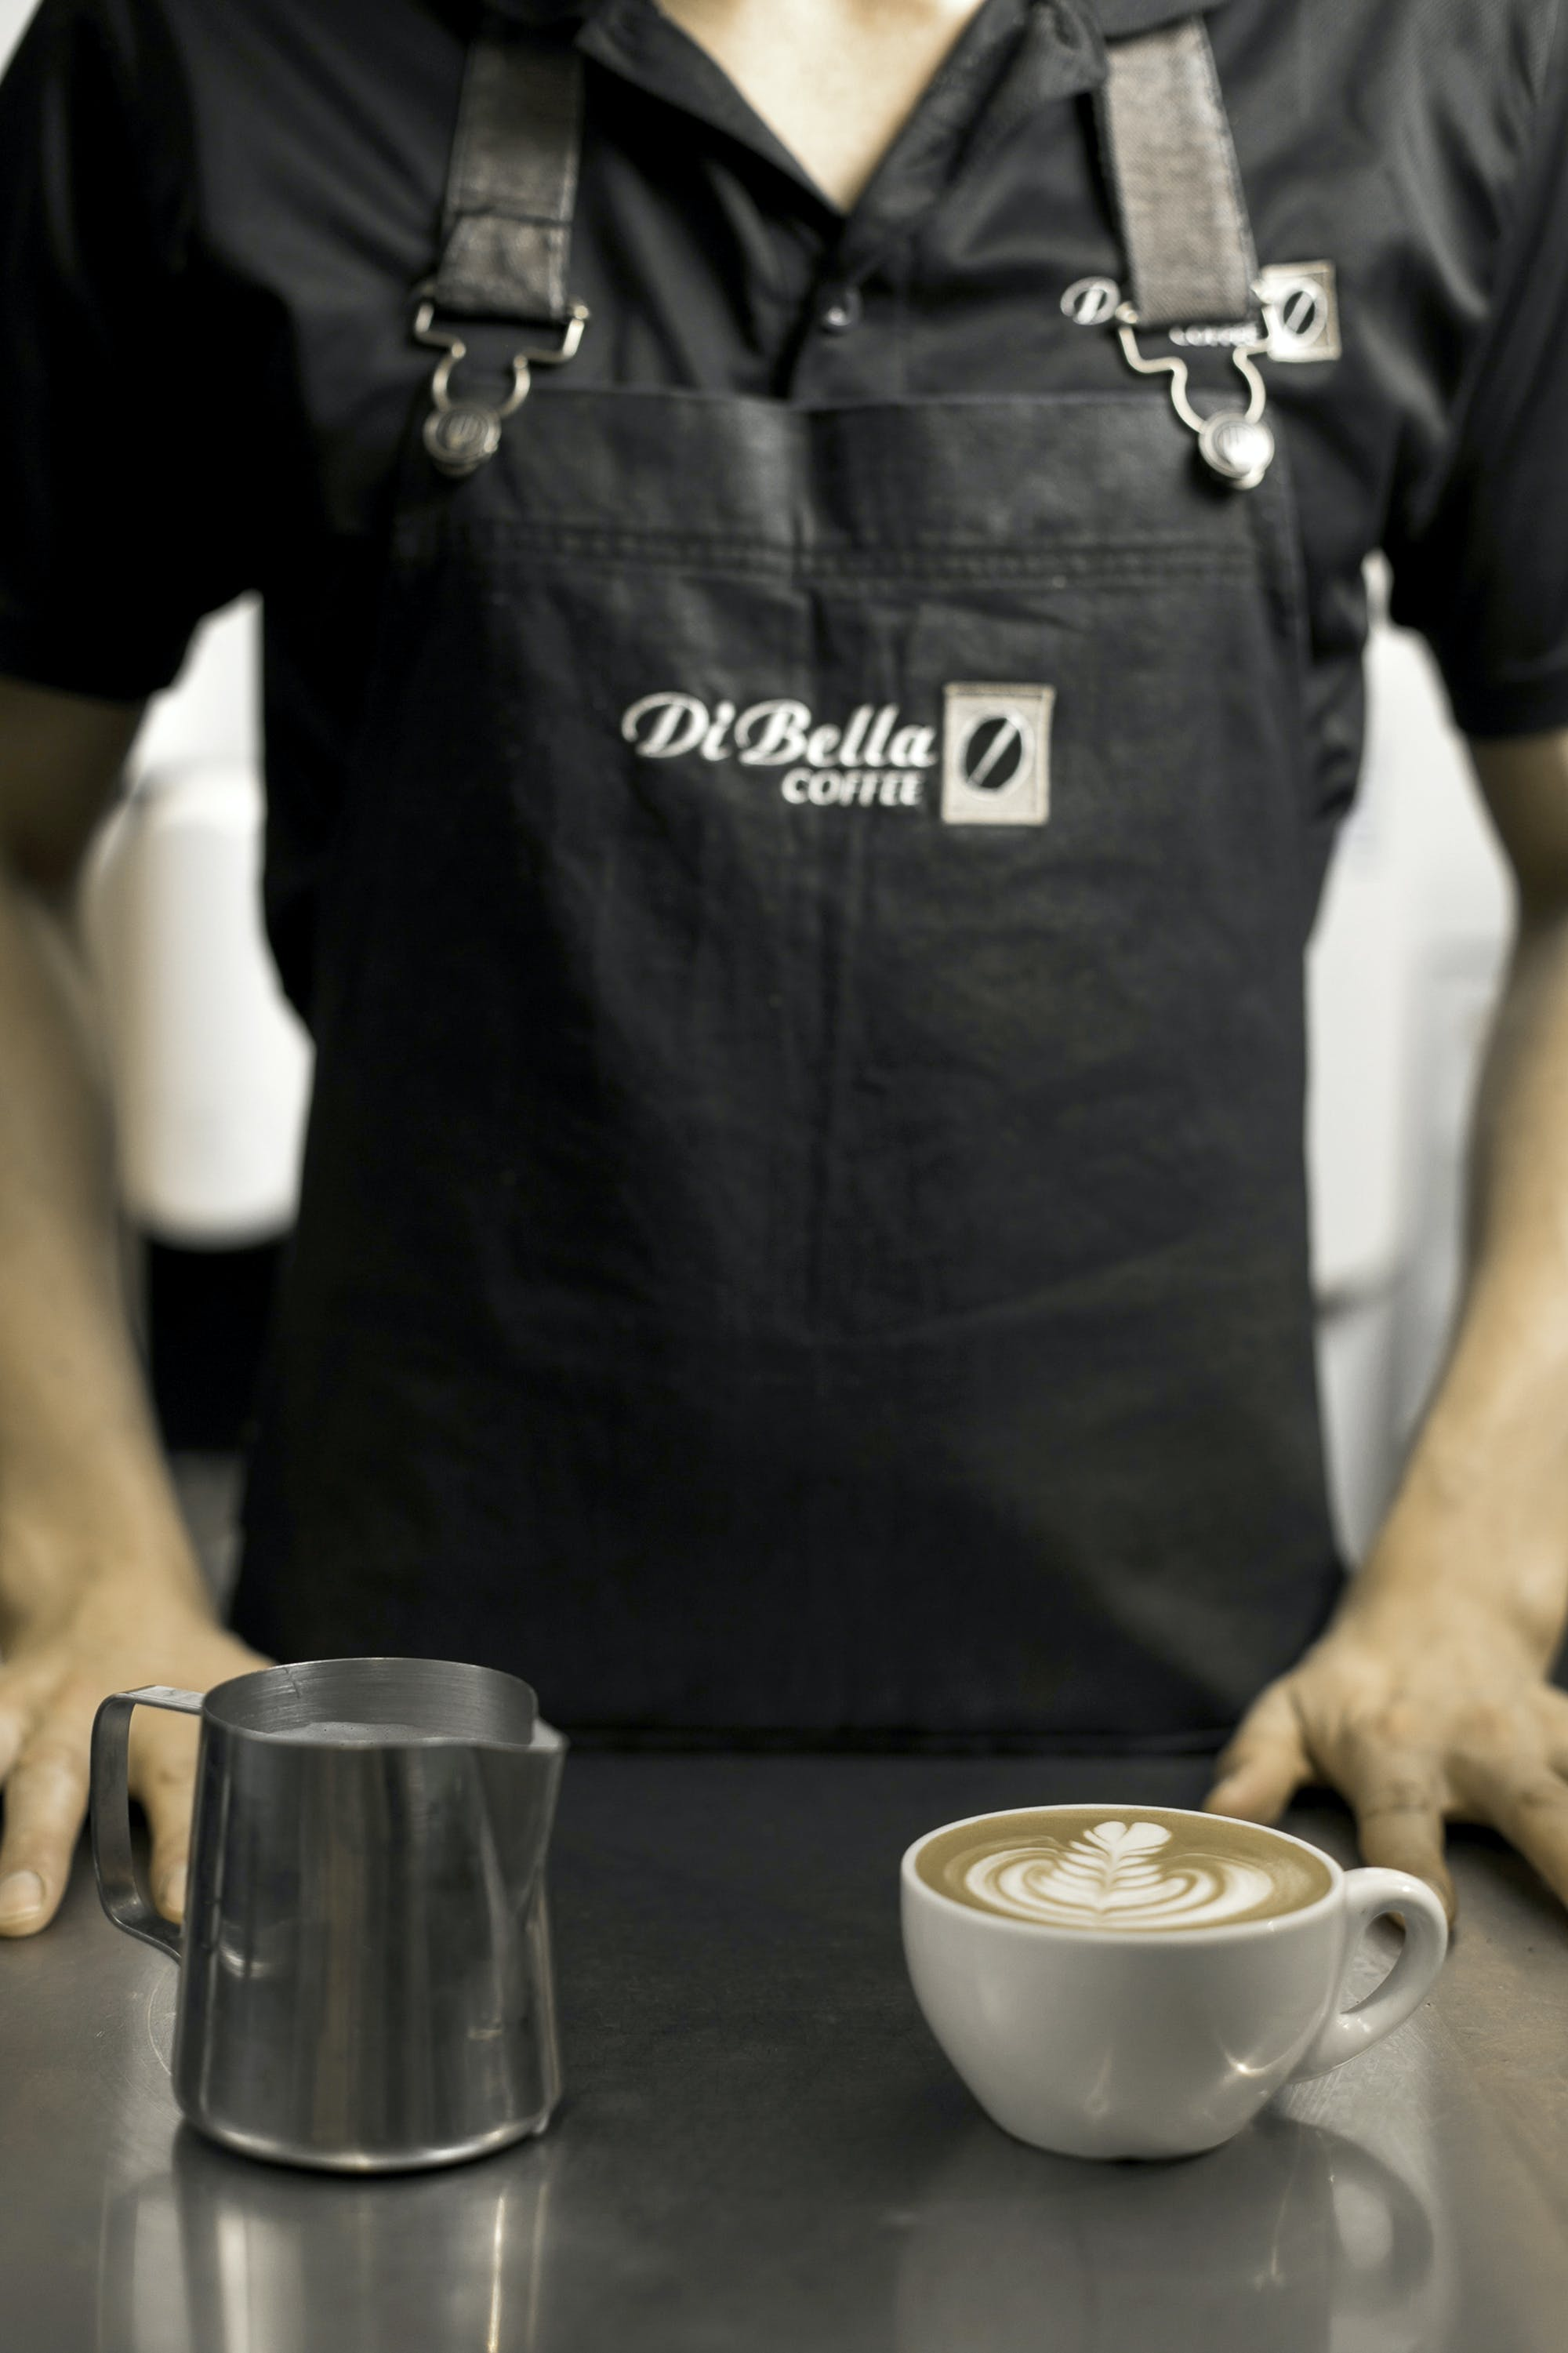 Man Prepared Cup of Cappuccino